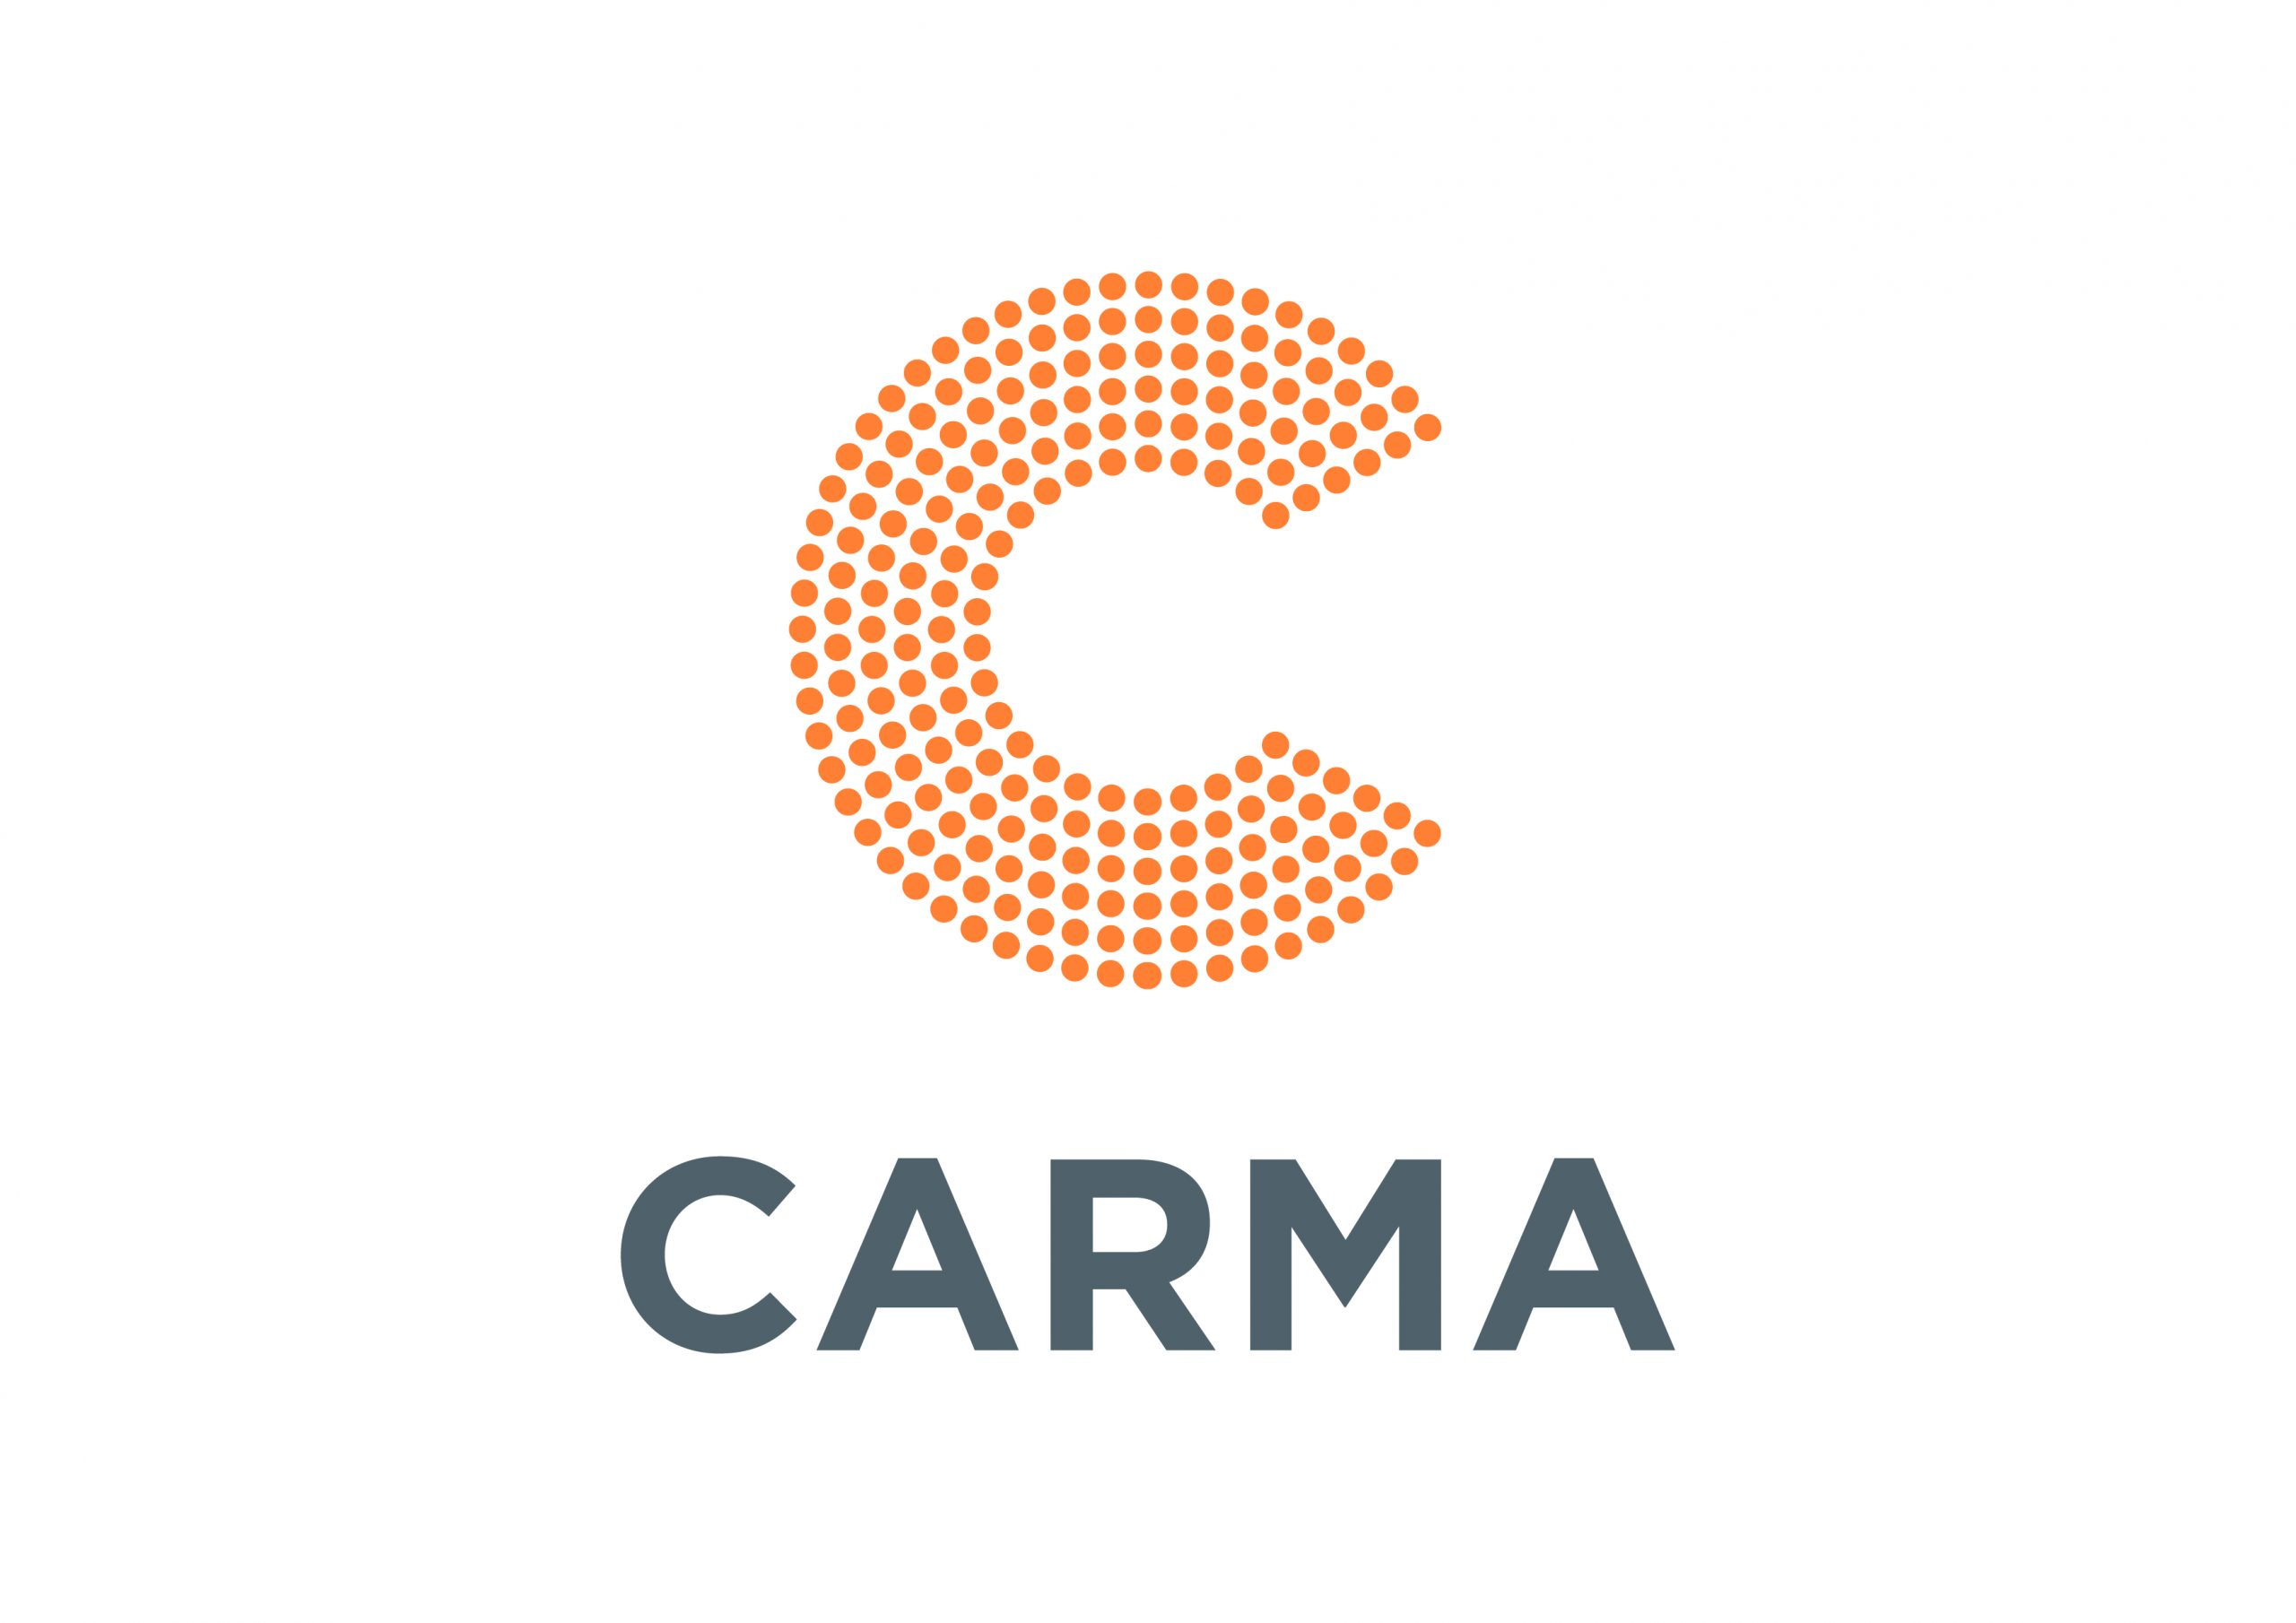 Carma, A Kenyan-based Credit Data Firm Plans To Relocate Its Headquarters To Lagos